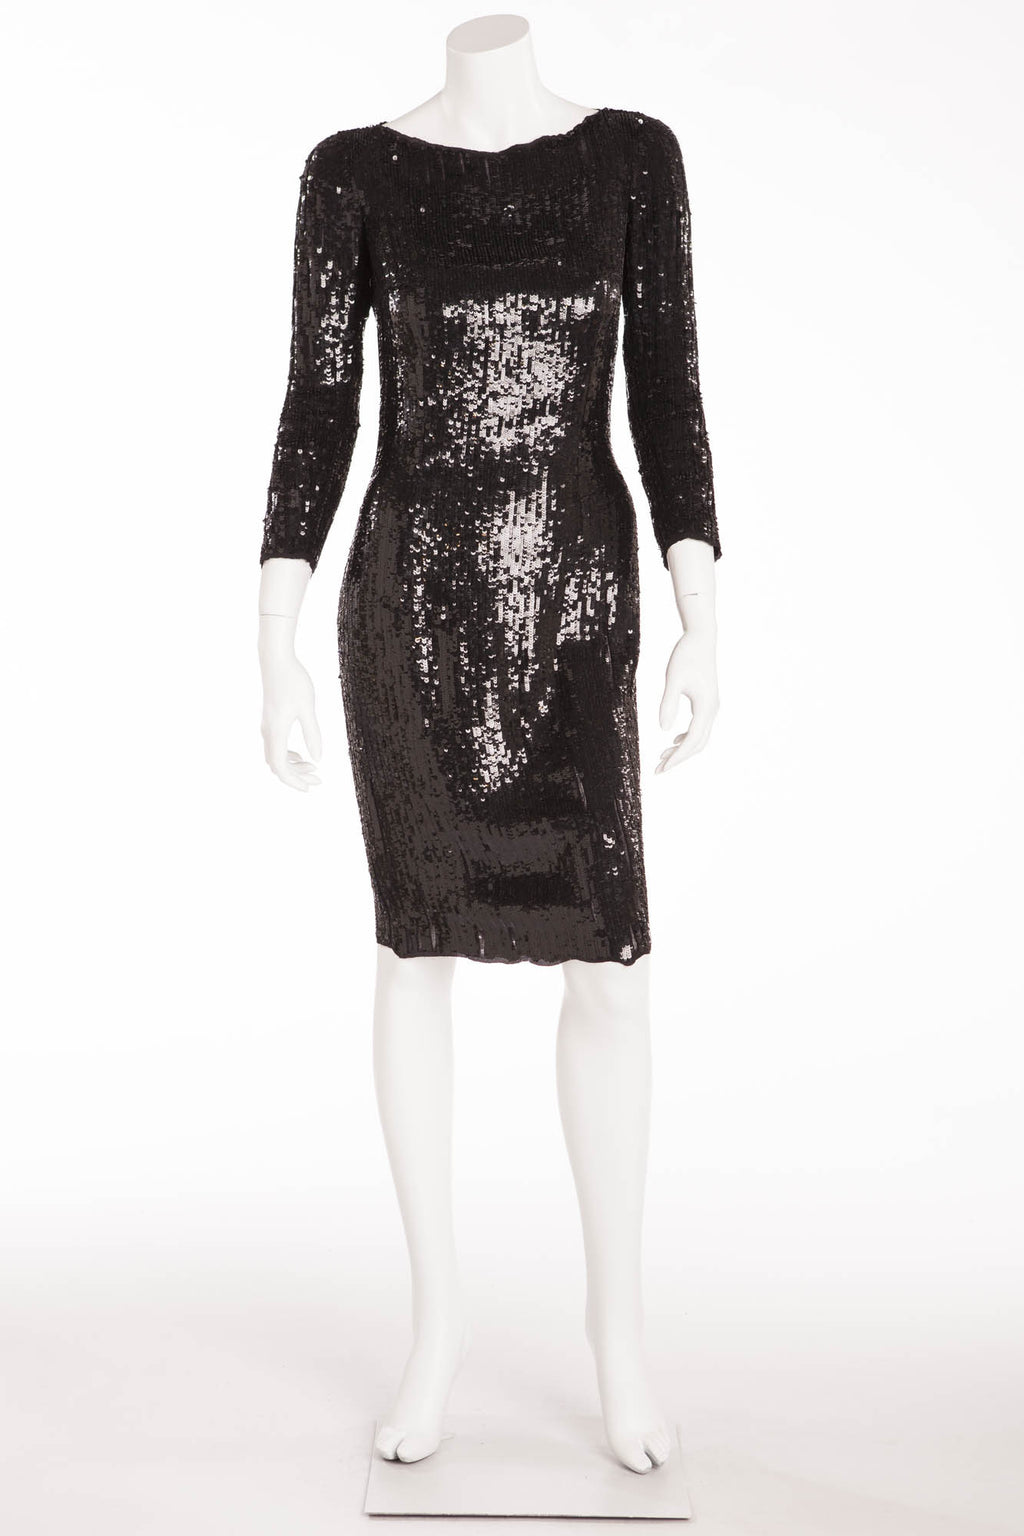 Balmain - New with Tags Black 3/4 Sleeve Sequin Dress - FR 40